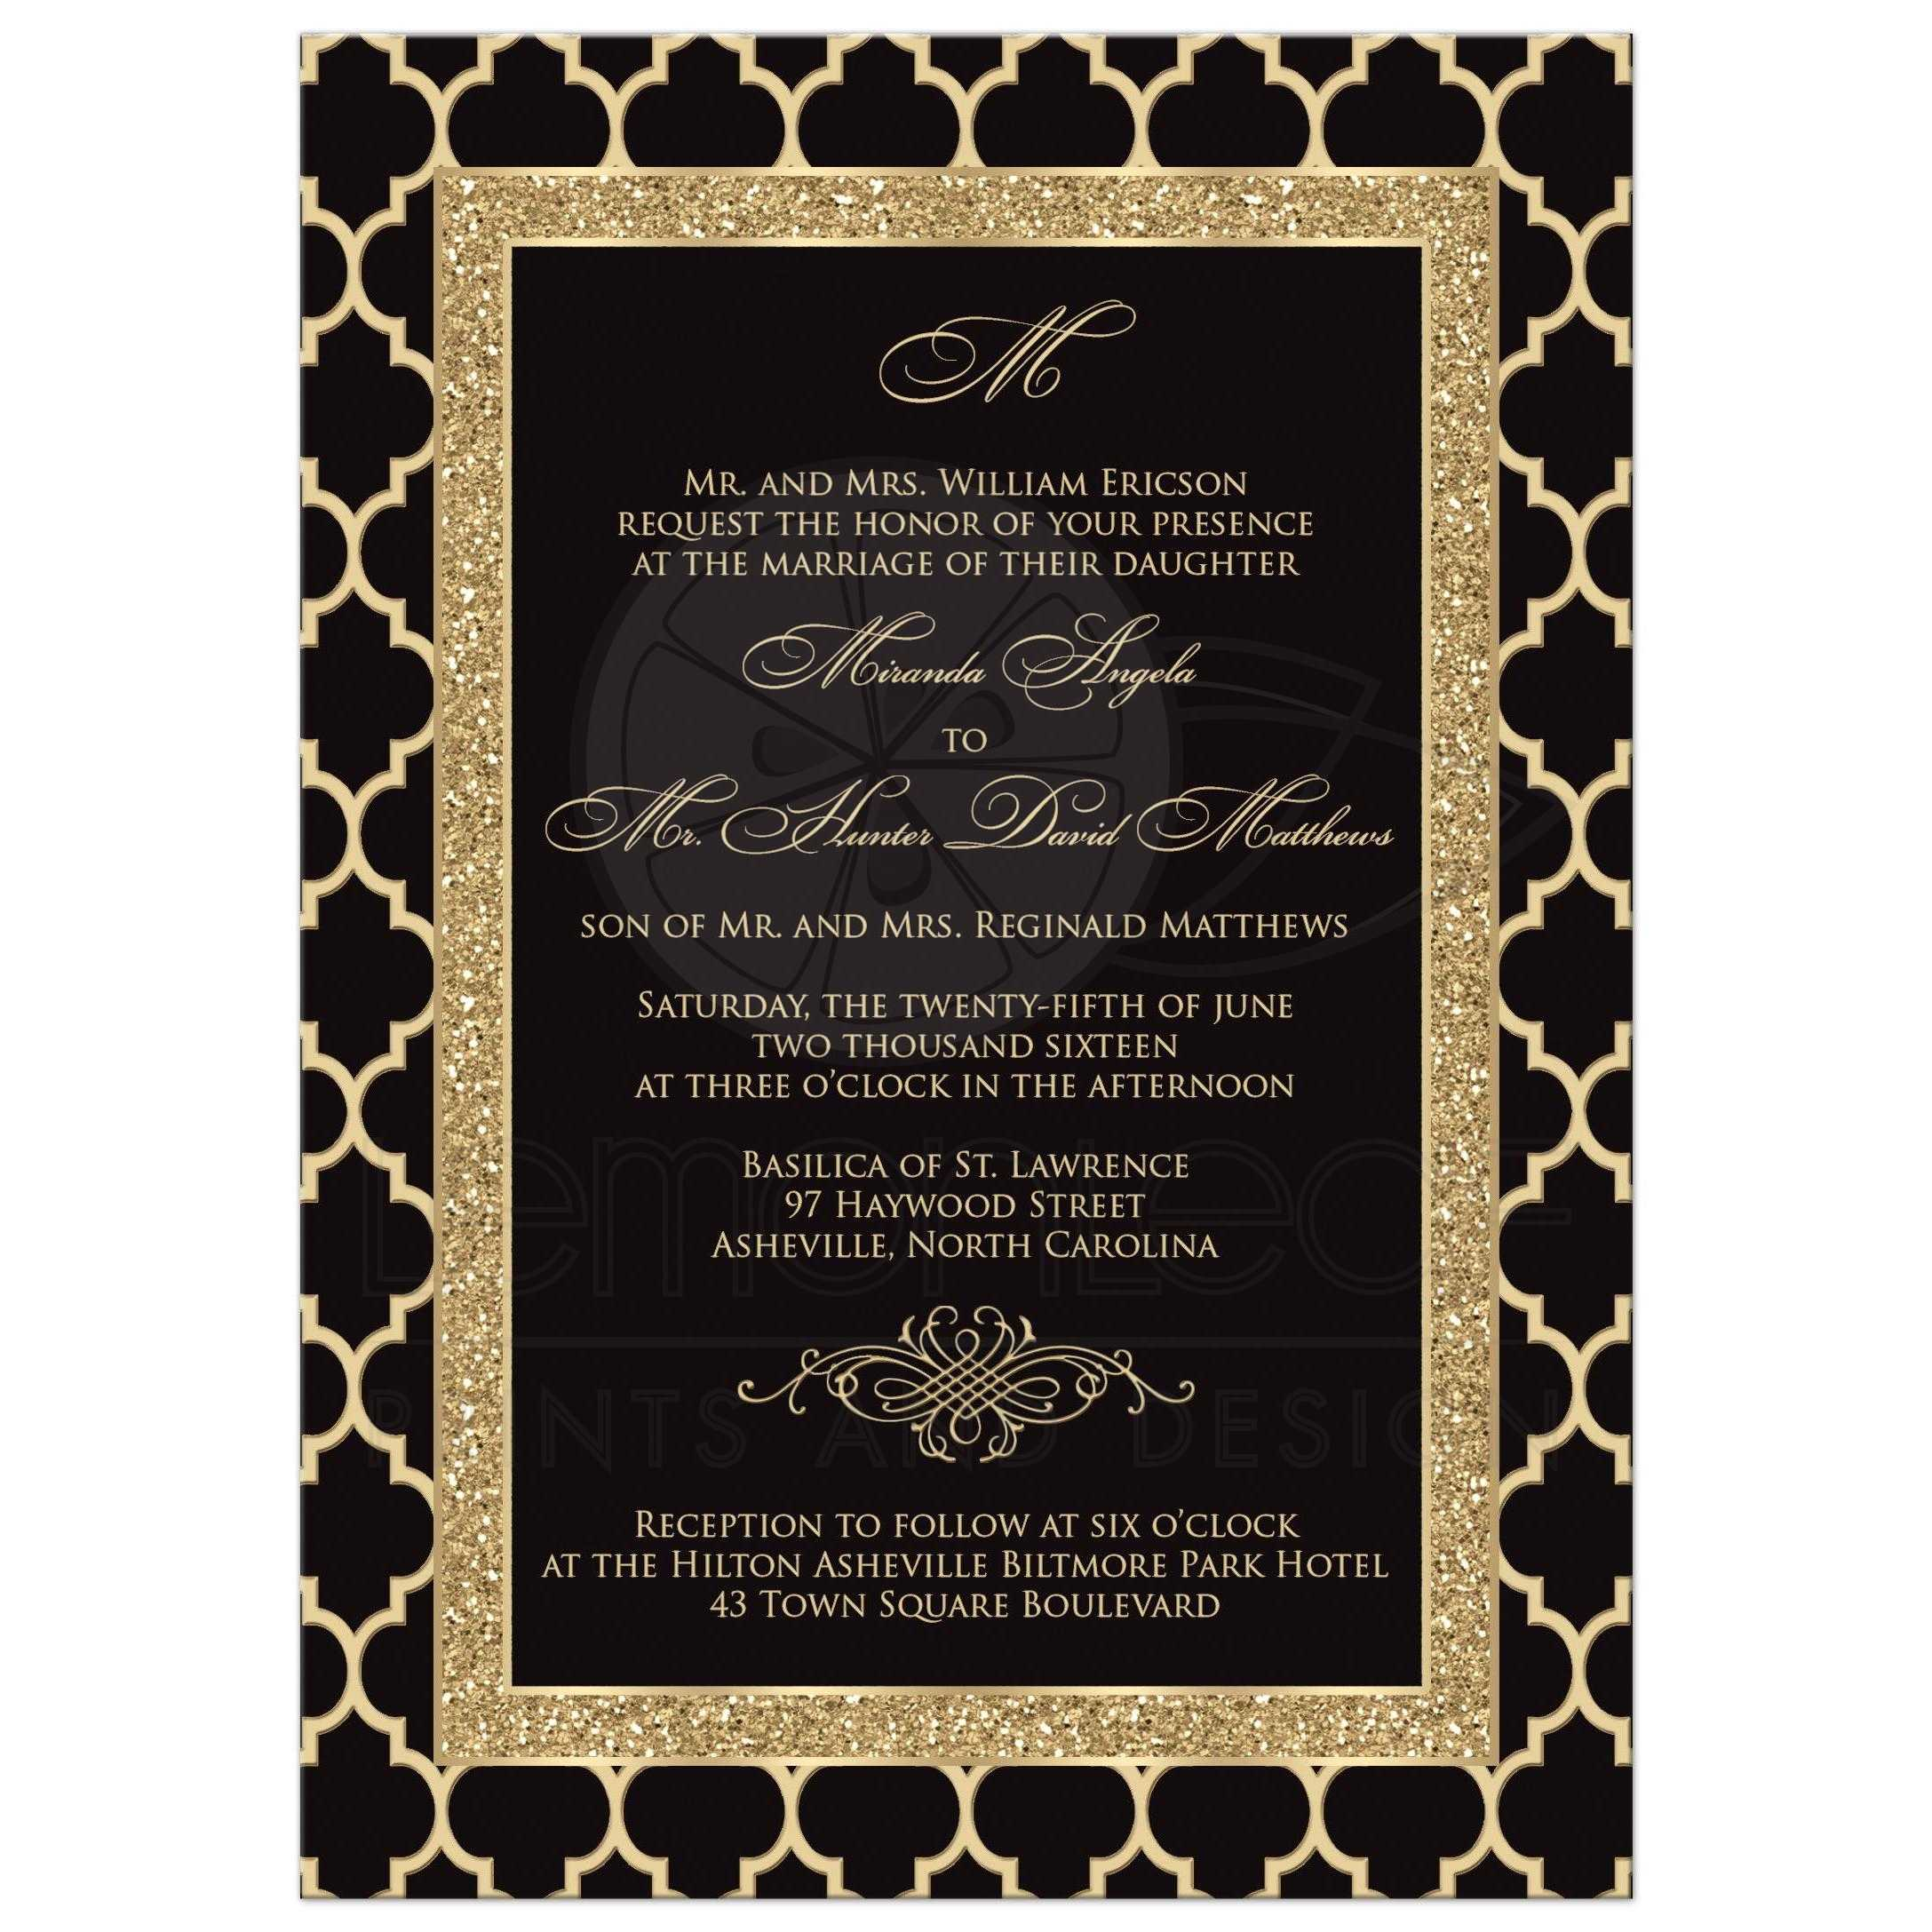 Burlap Invitations Wedding with luxury invitation layout